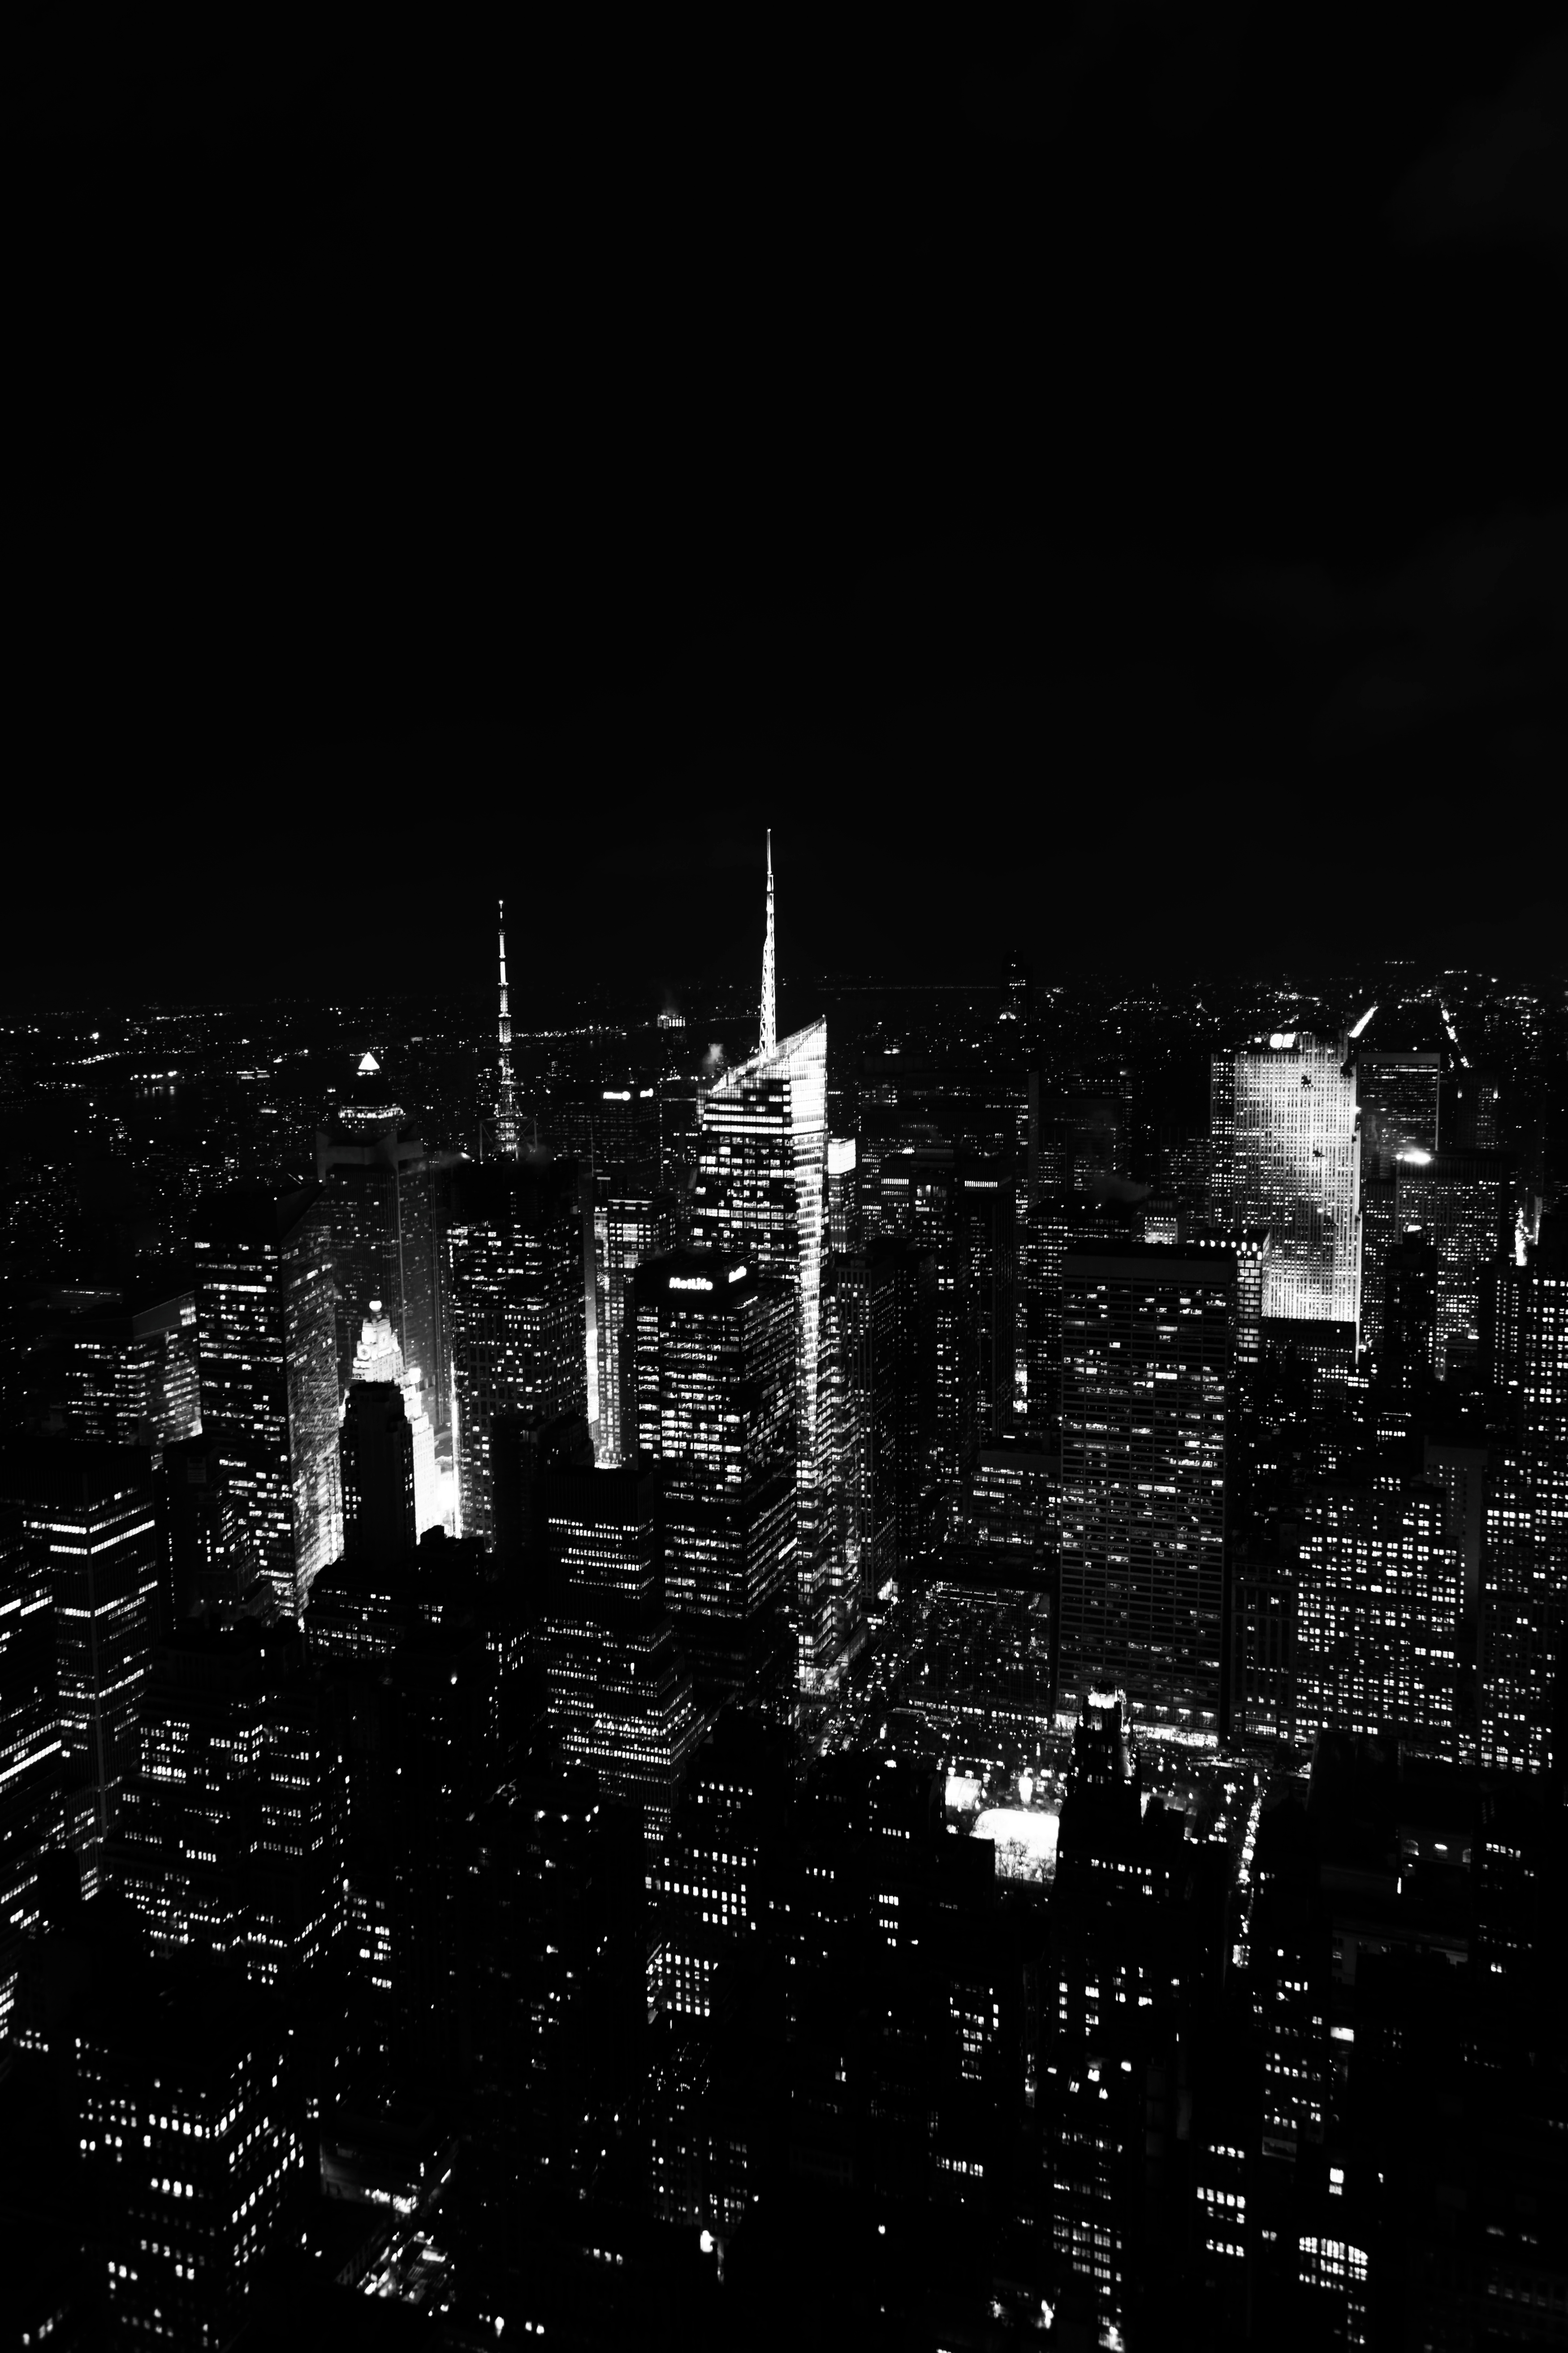 Trippy Wallpapers Hd Iphone New Aesthetic Pics 11 Best Free New York Building